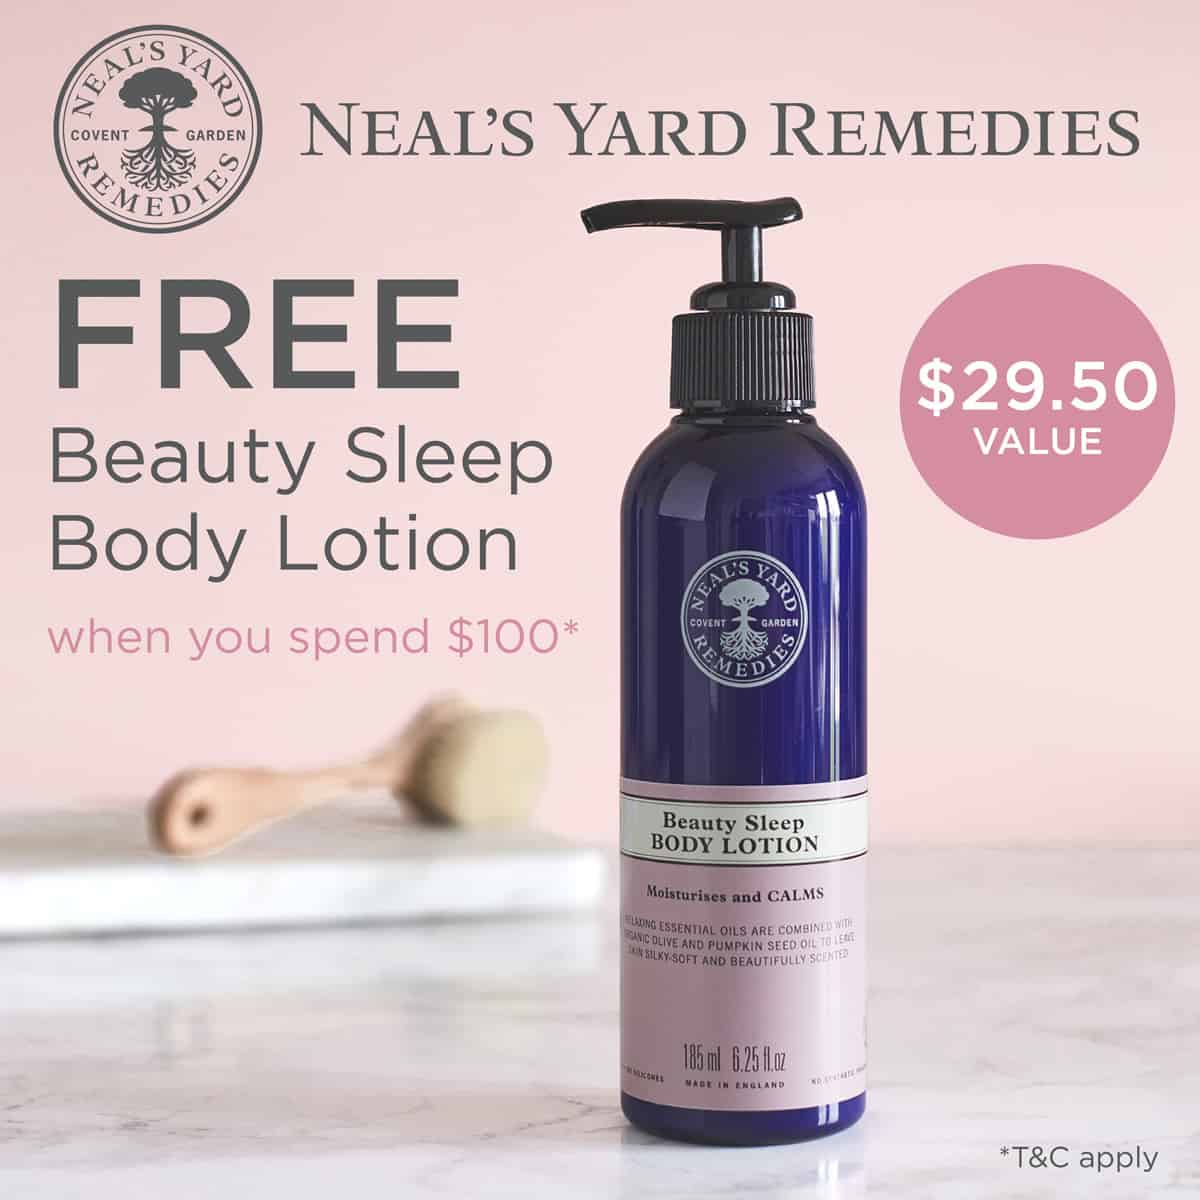 Beauty Sleep Body Lotion - FREE with $100 order .... read more about organic products to help you sleep on PeppermintTulip.com